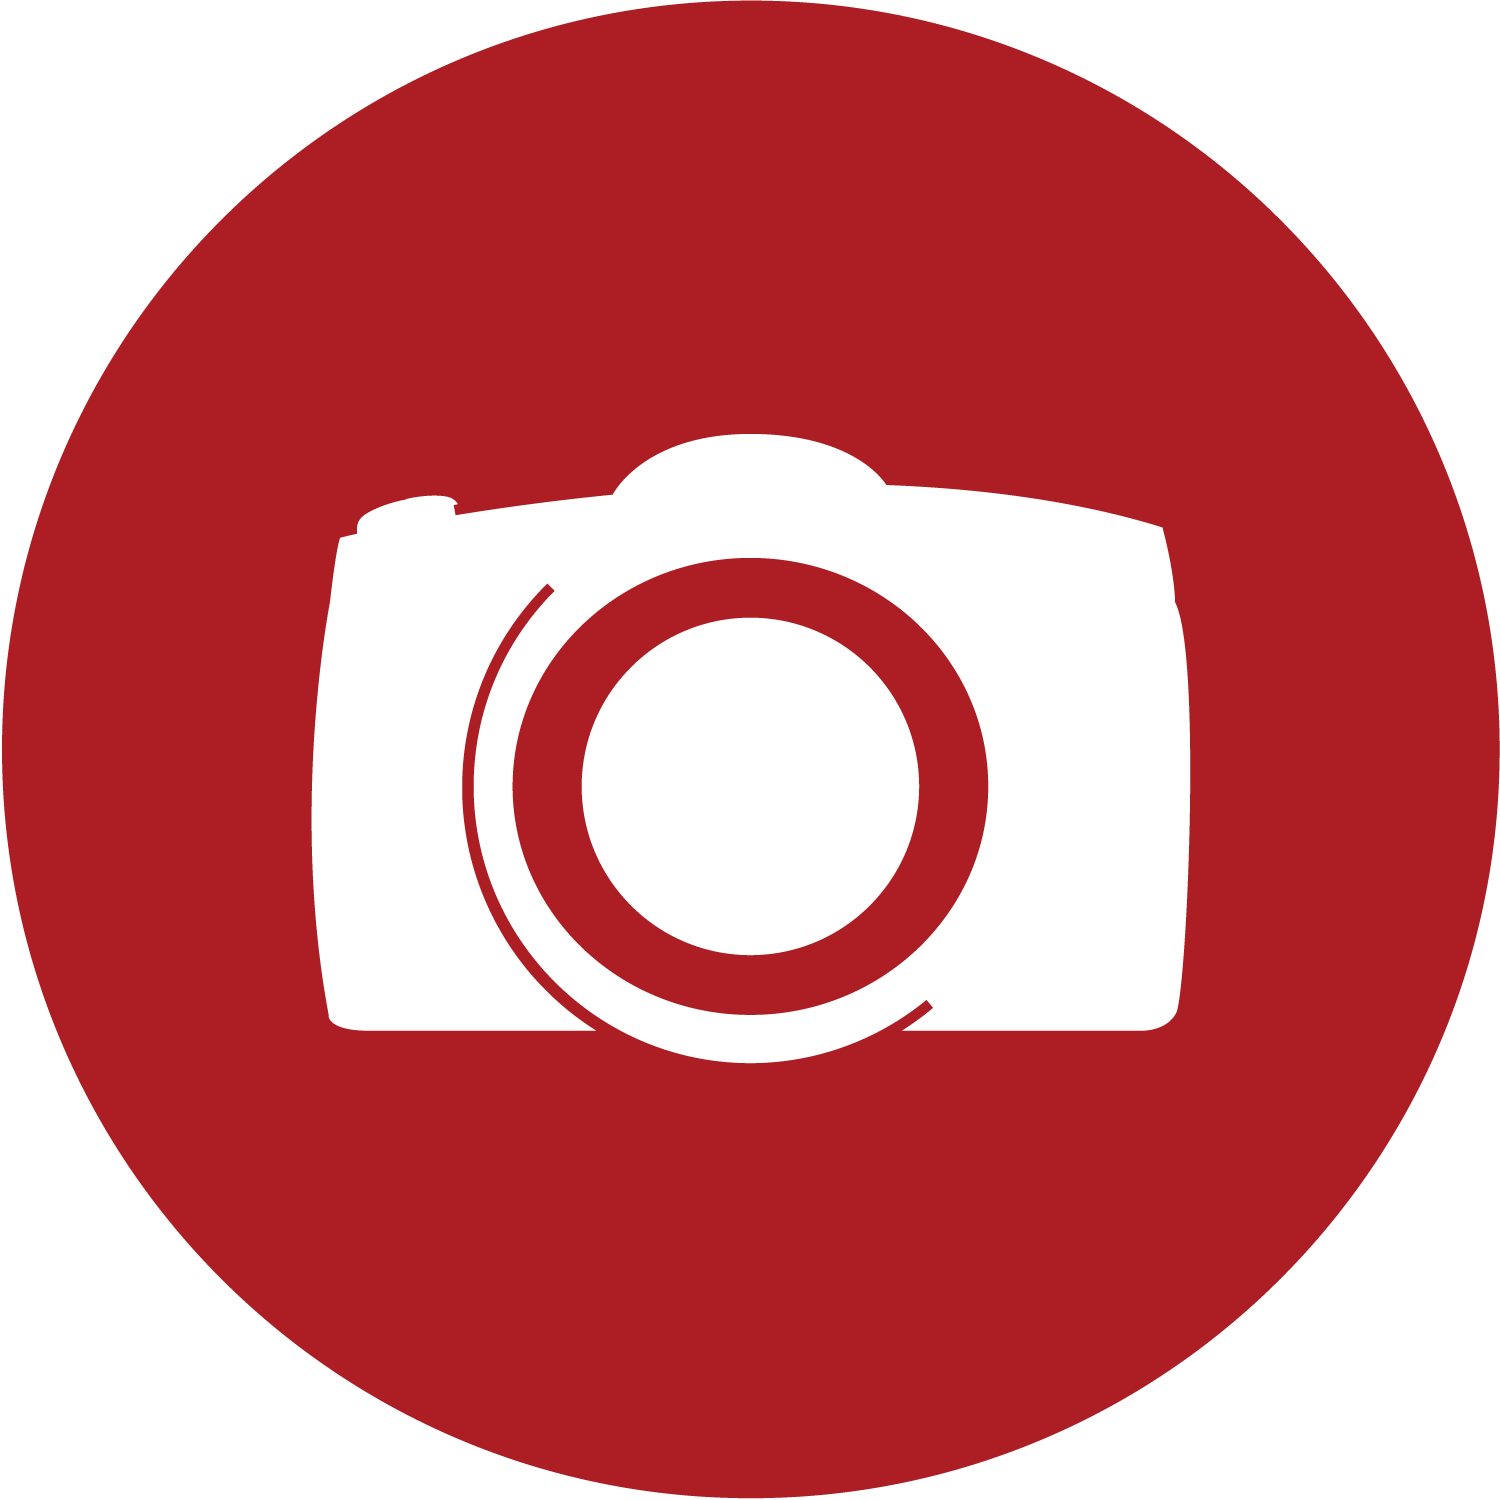 10 Pink Transparent Camera Icon Images